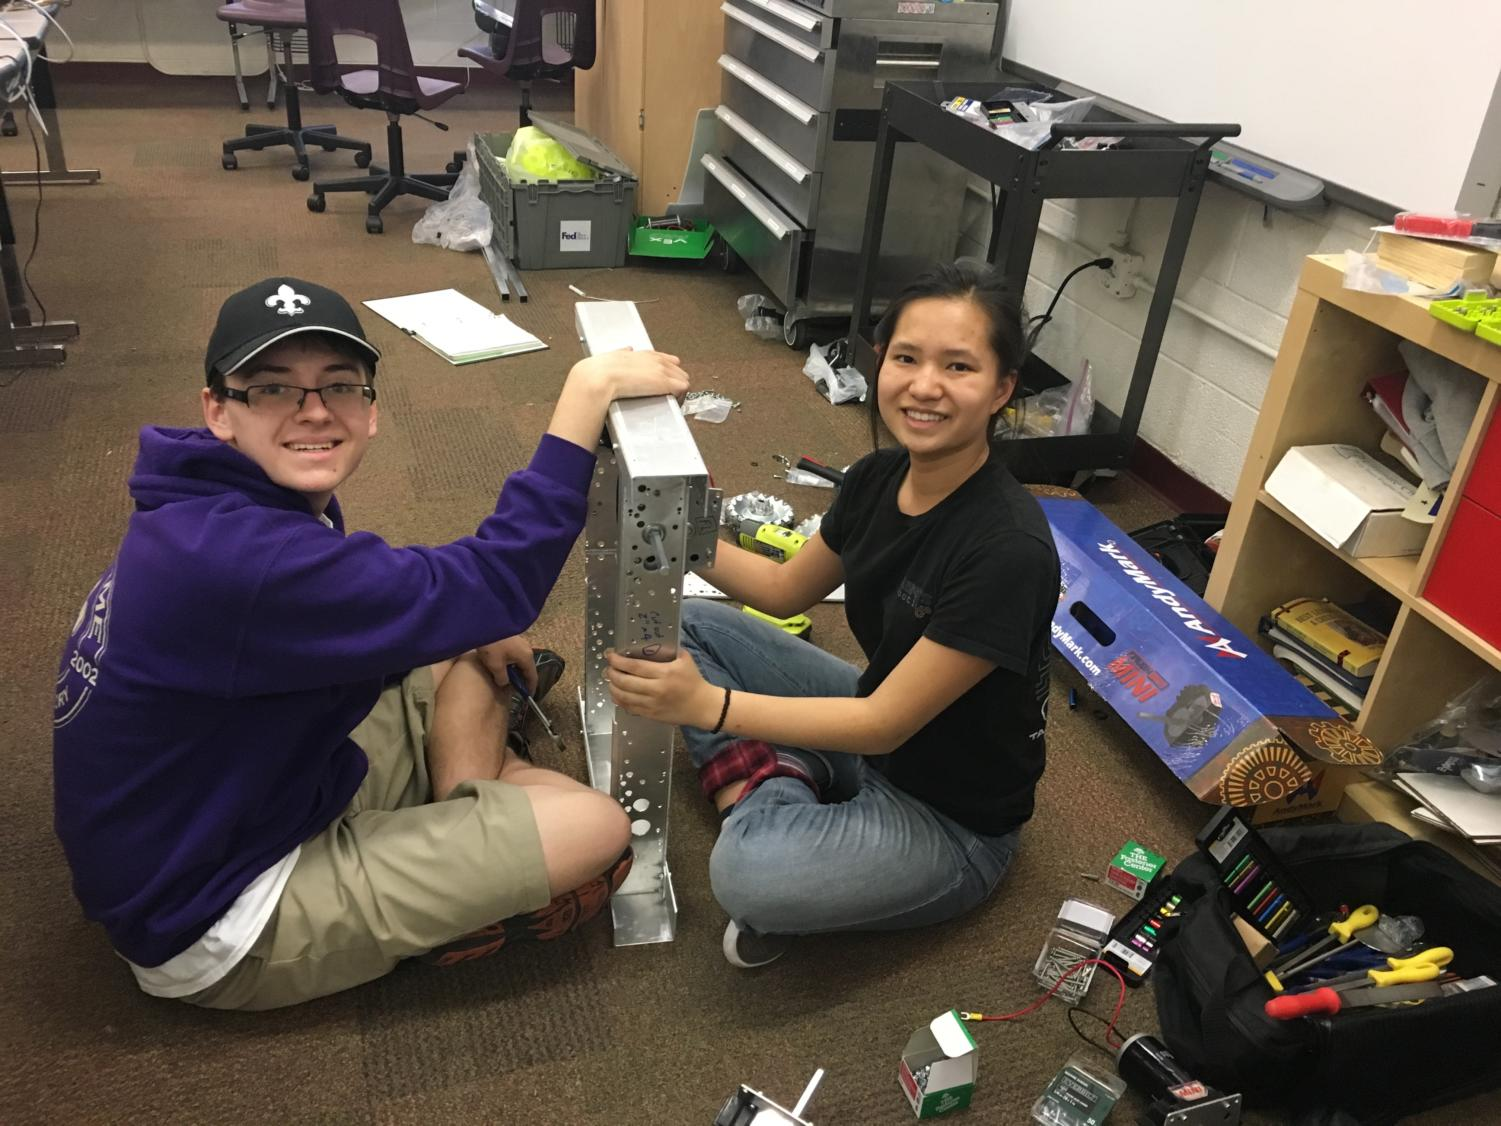 Seniors Devon Lauffer and Sophia Asta working on a project (Jerry Asta/Special to the Seraphim